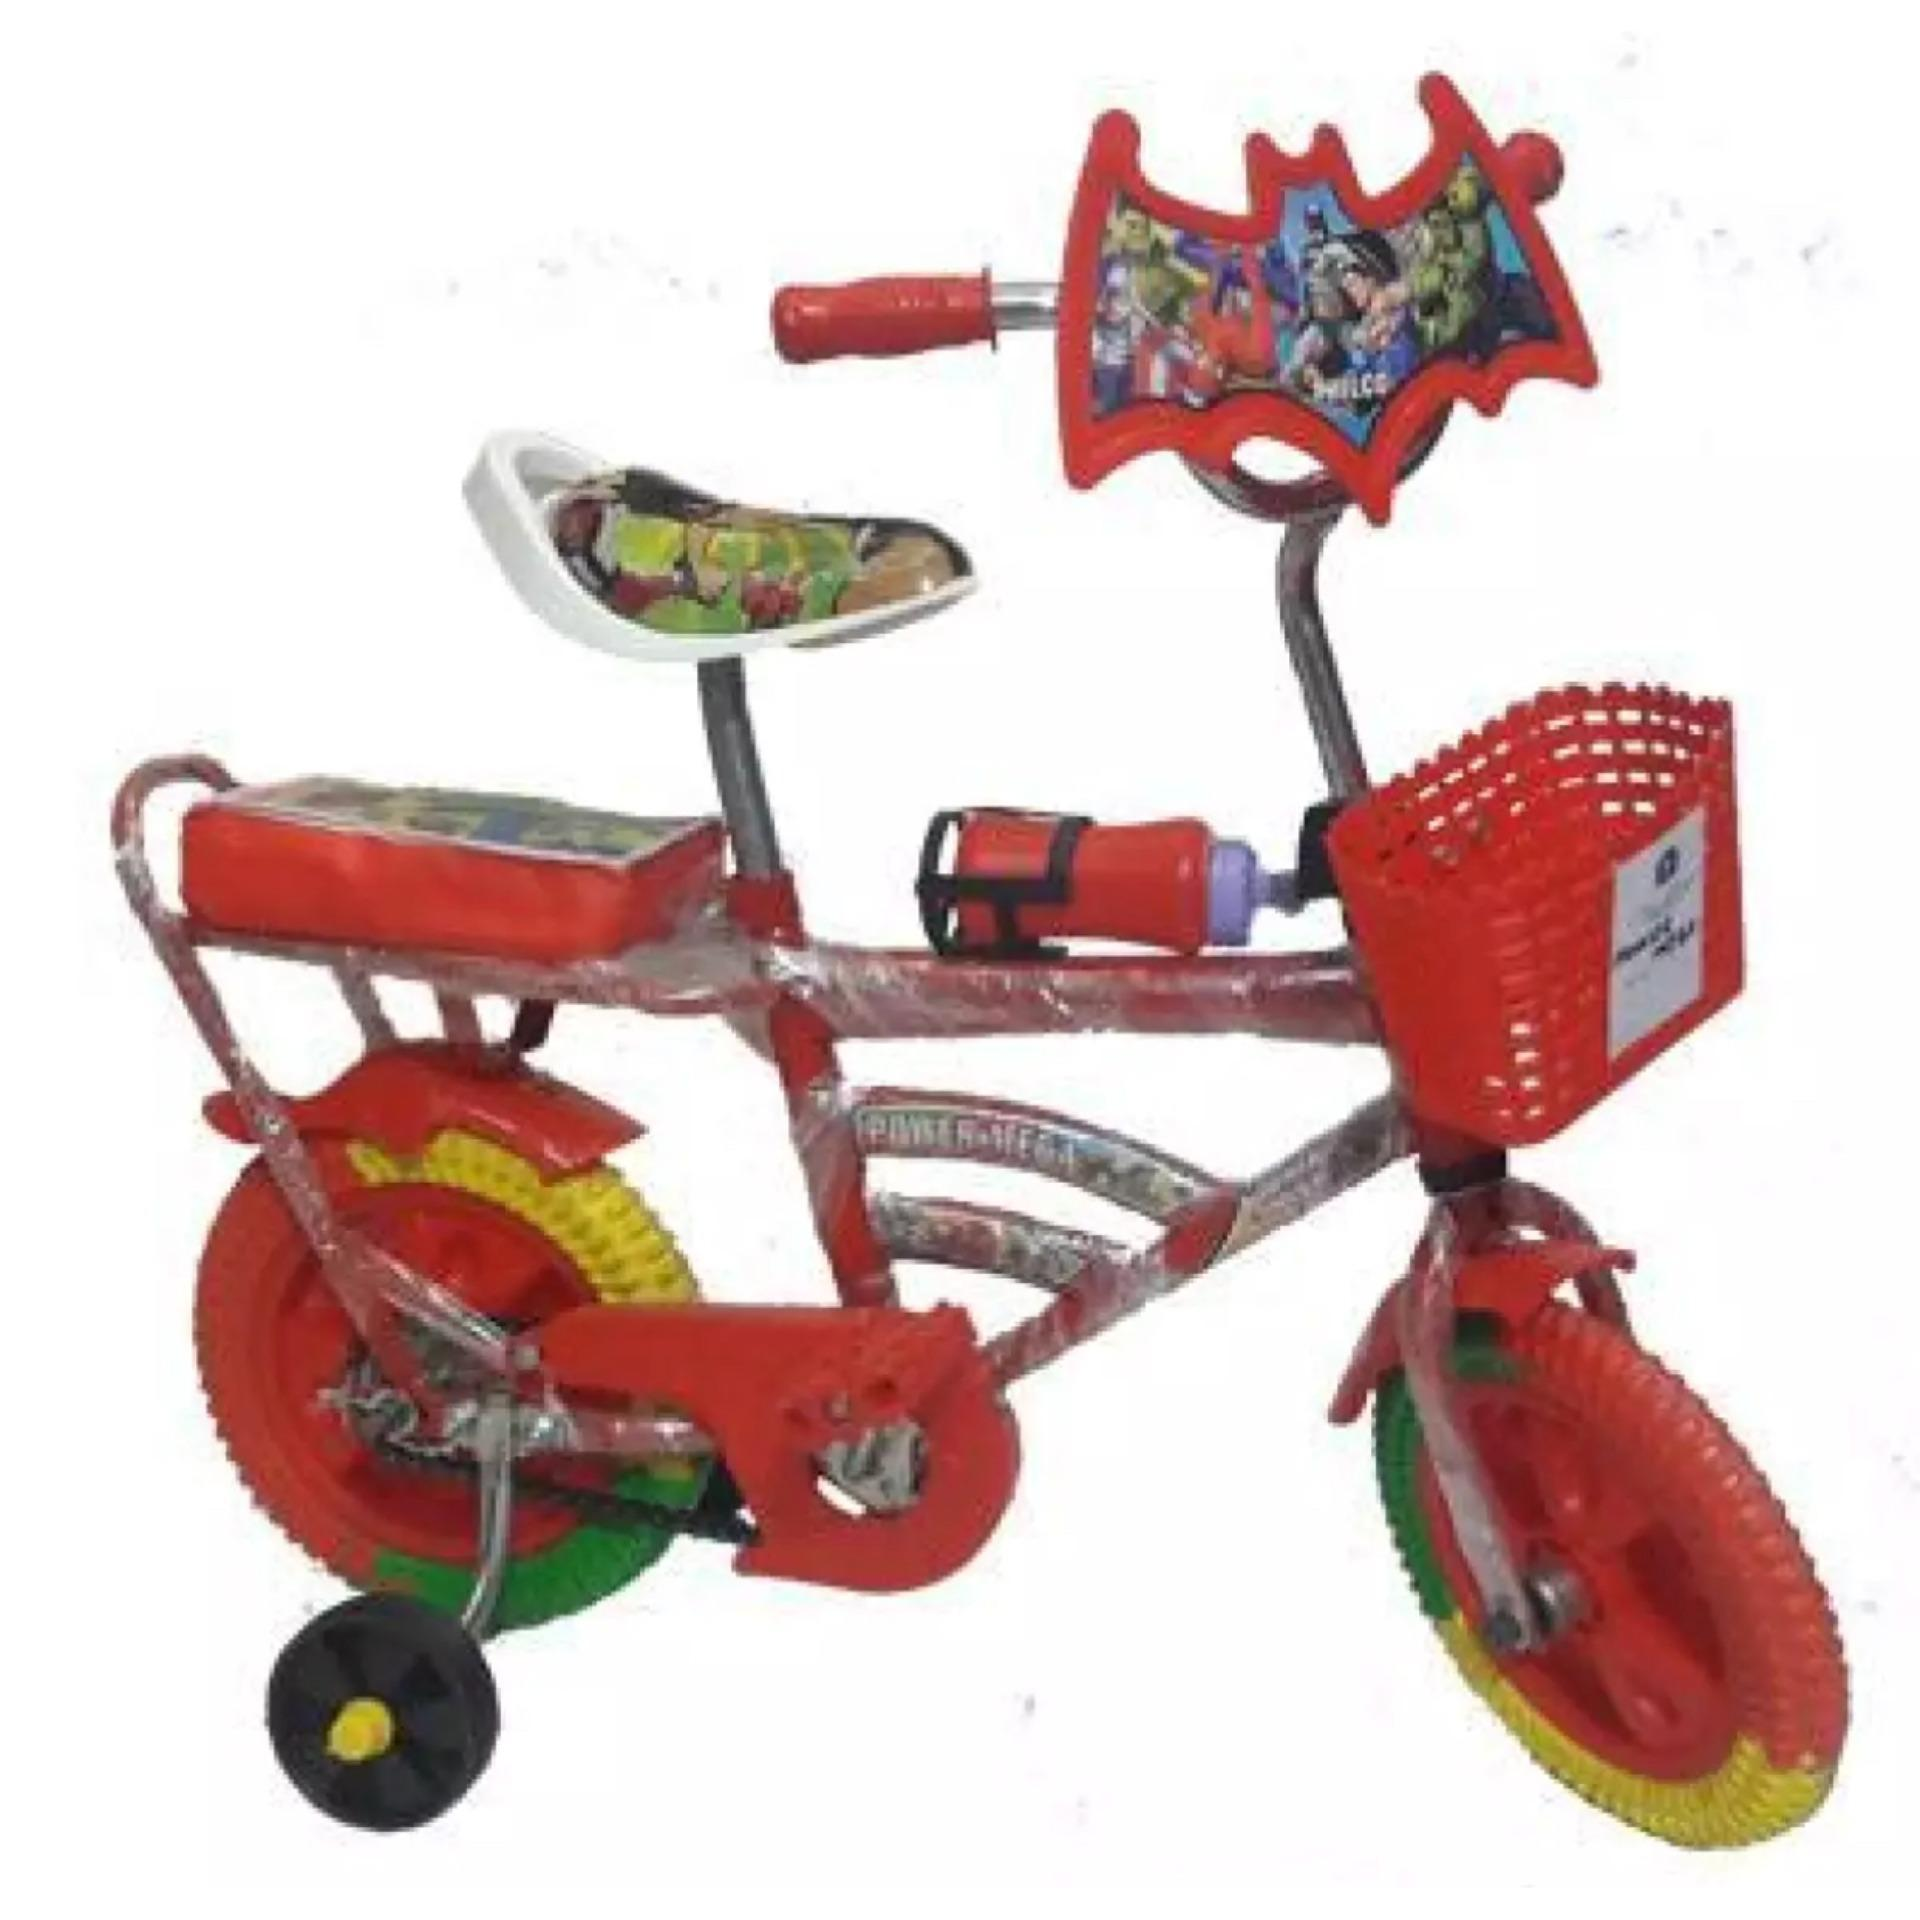 Power Mega Two Wheeler Cycle for Kids Red and Blue Color